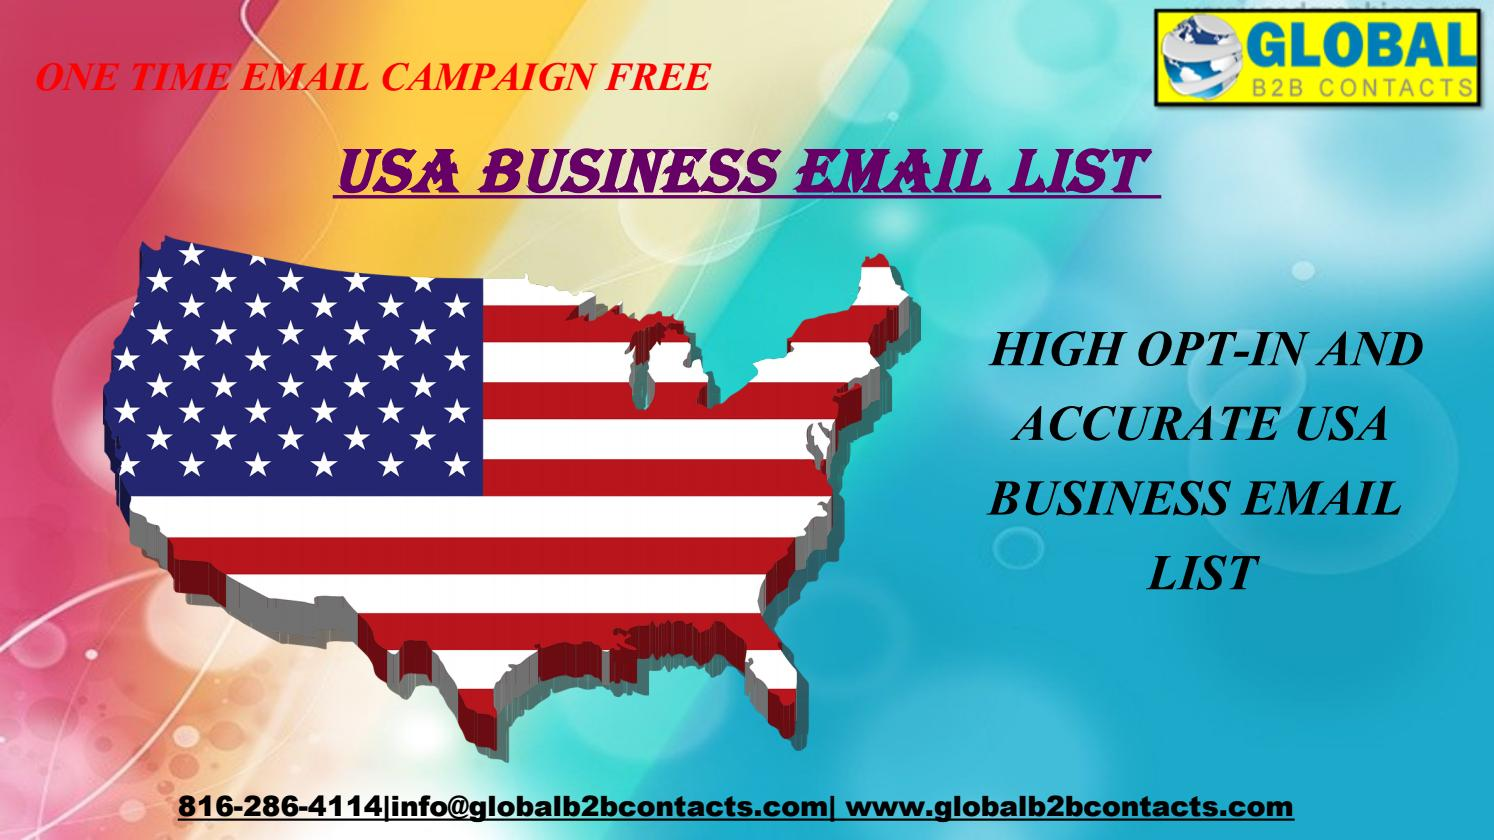 USA Business Email List by dylangloria99 - issuu